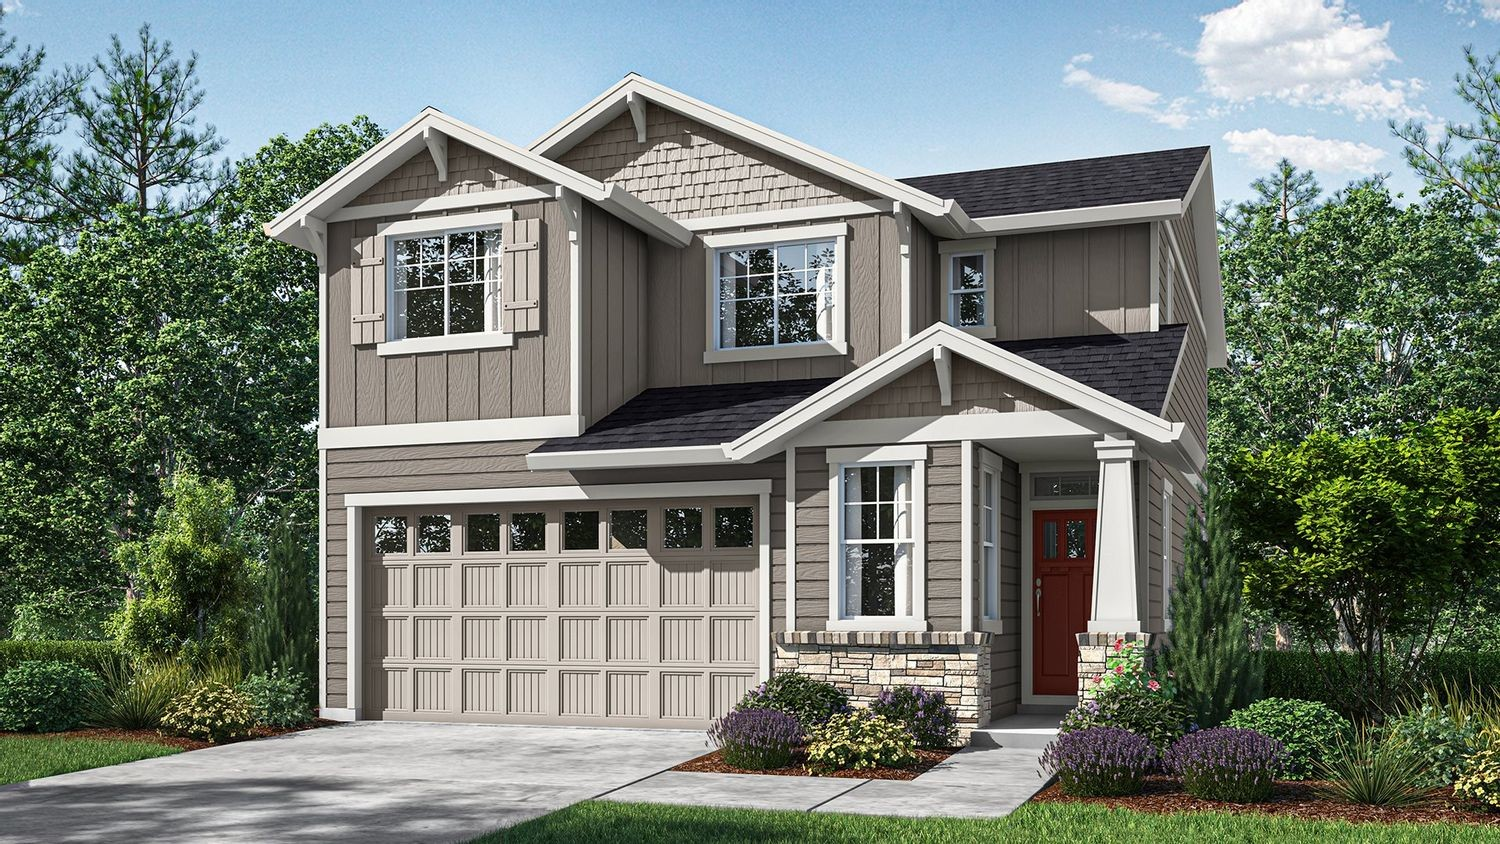 Ready To Build Home In Baker Creek - The Opal Collection Community